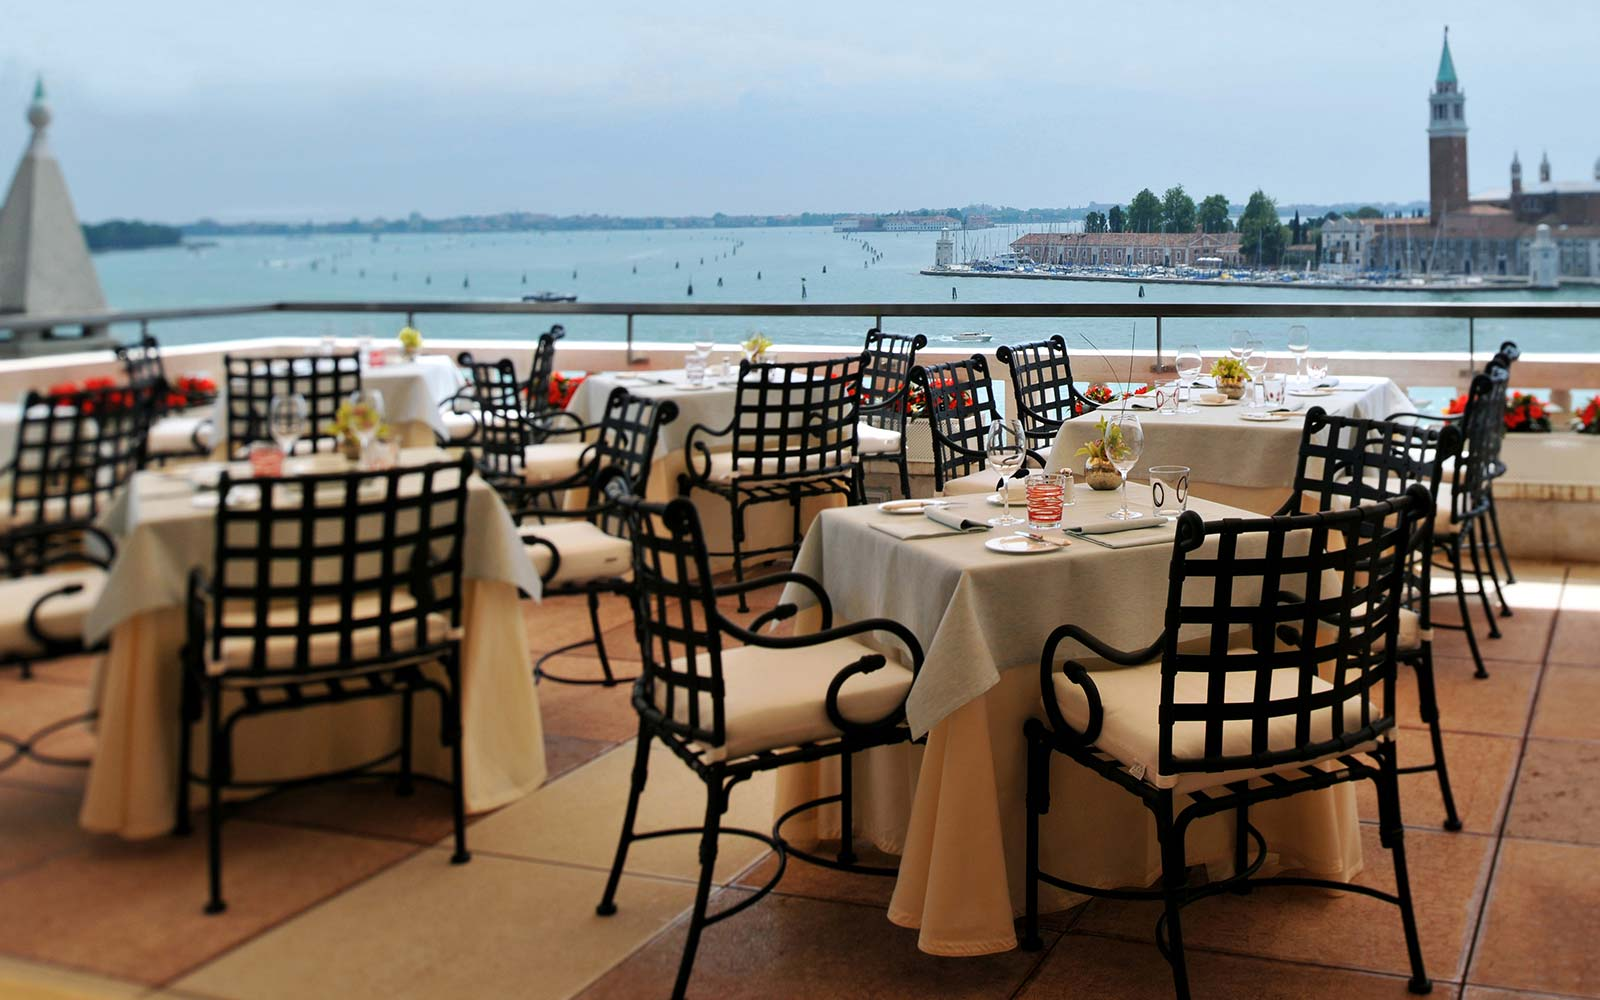 Emejing Terrazza Venezia Bari Photos - Decorating Interior Design ...